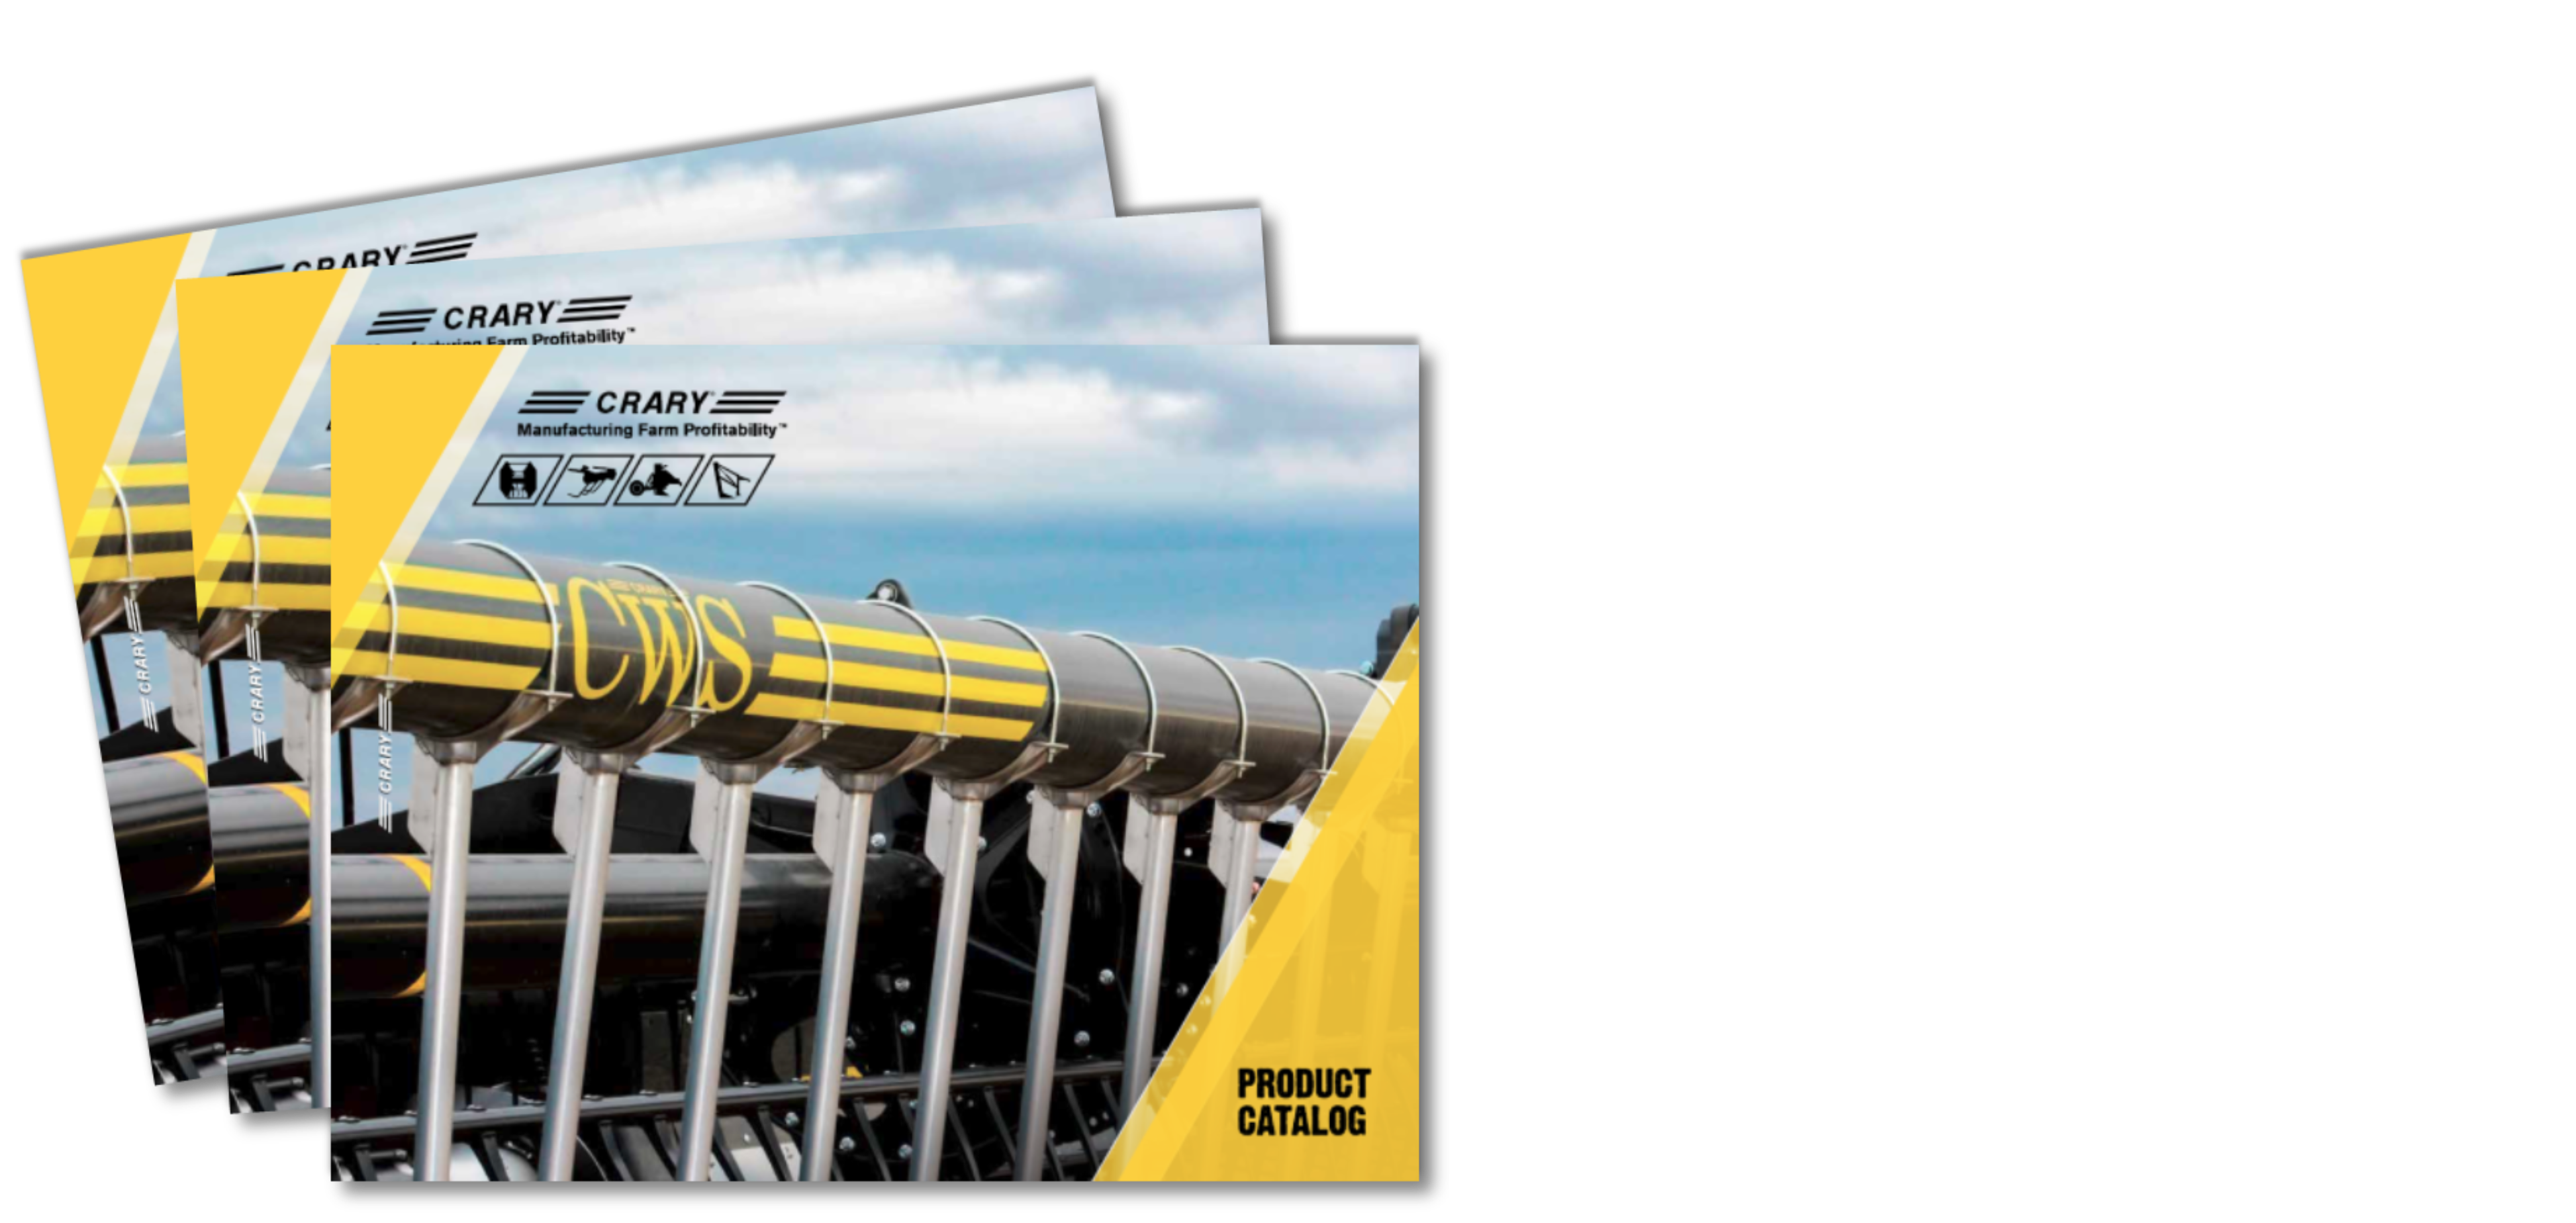 Download the Crary Catalog